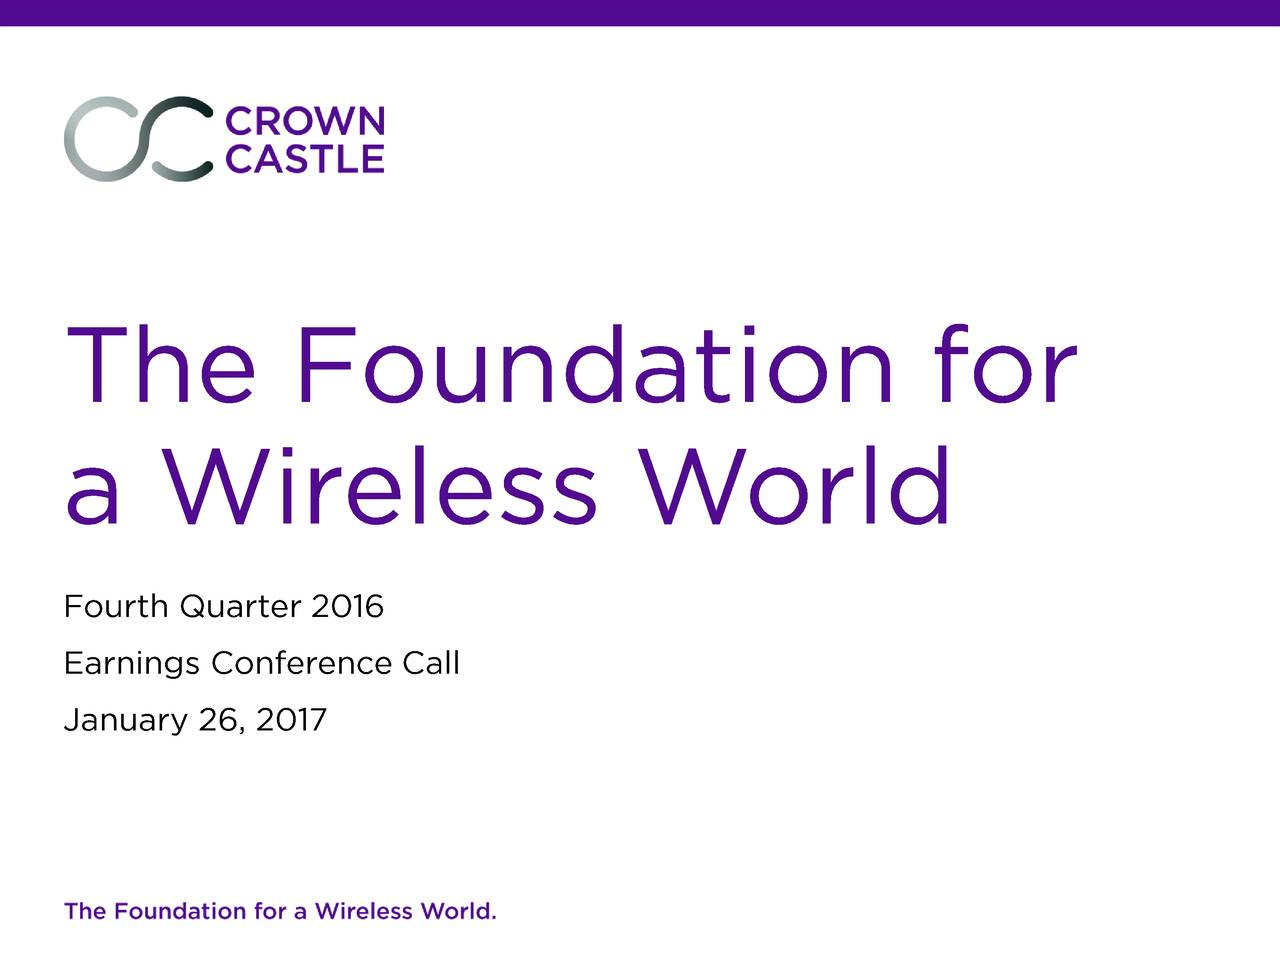 crown castle international corp 2016 q4 results earnings call slides - Violet Castle 2016